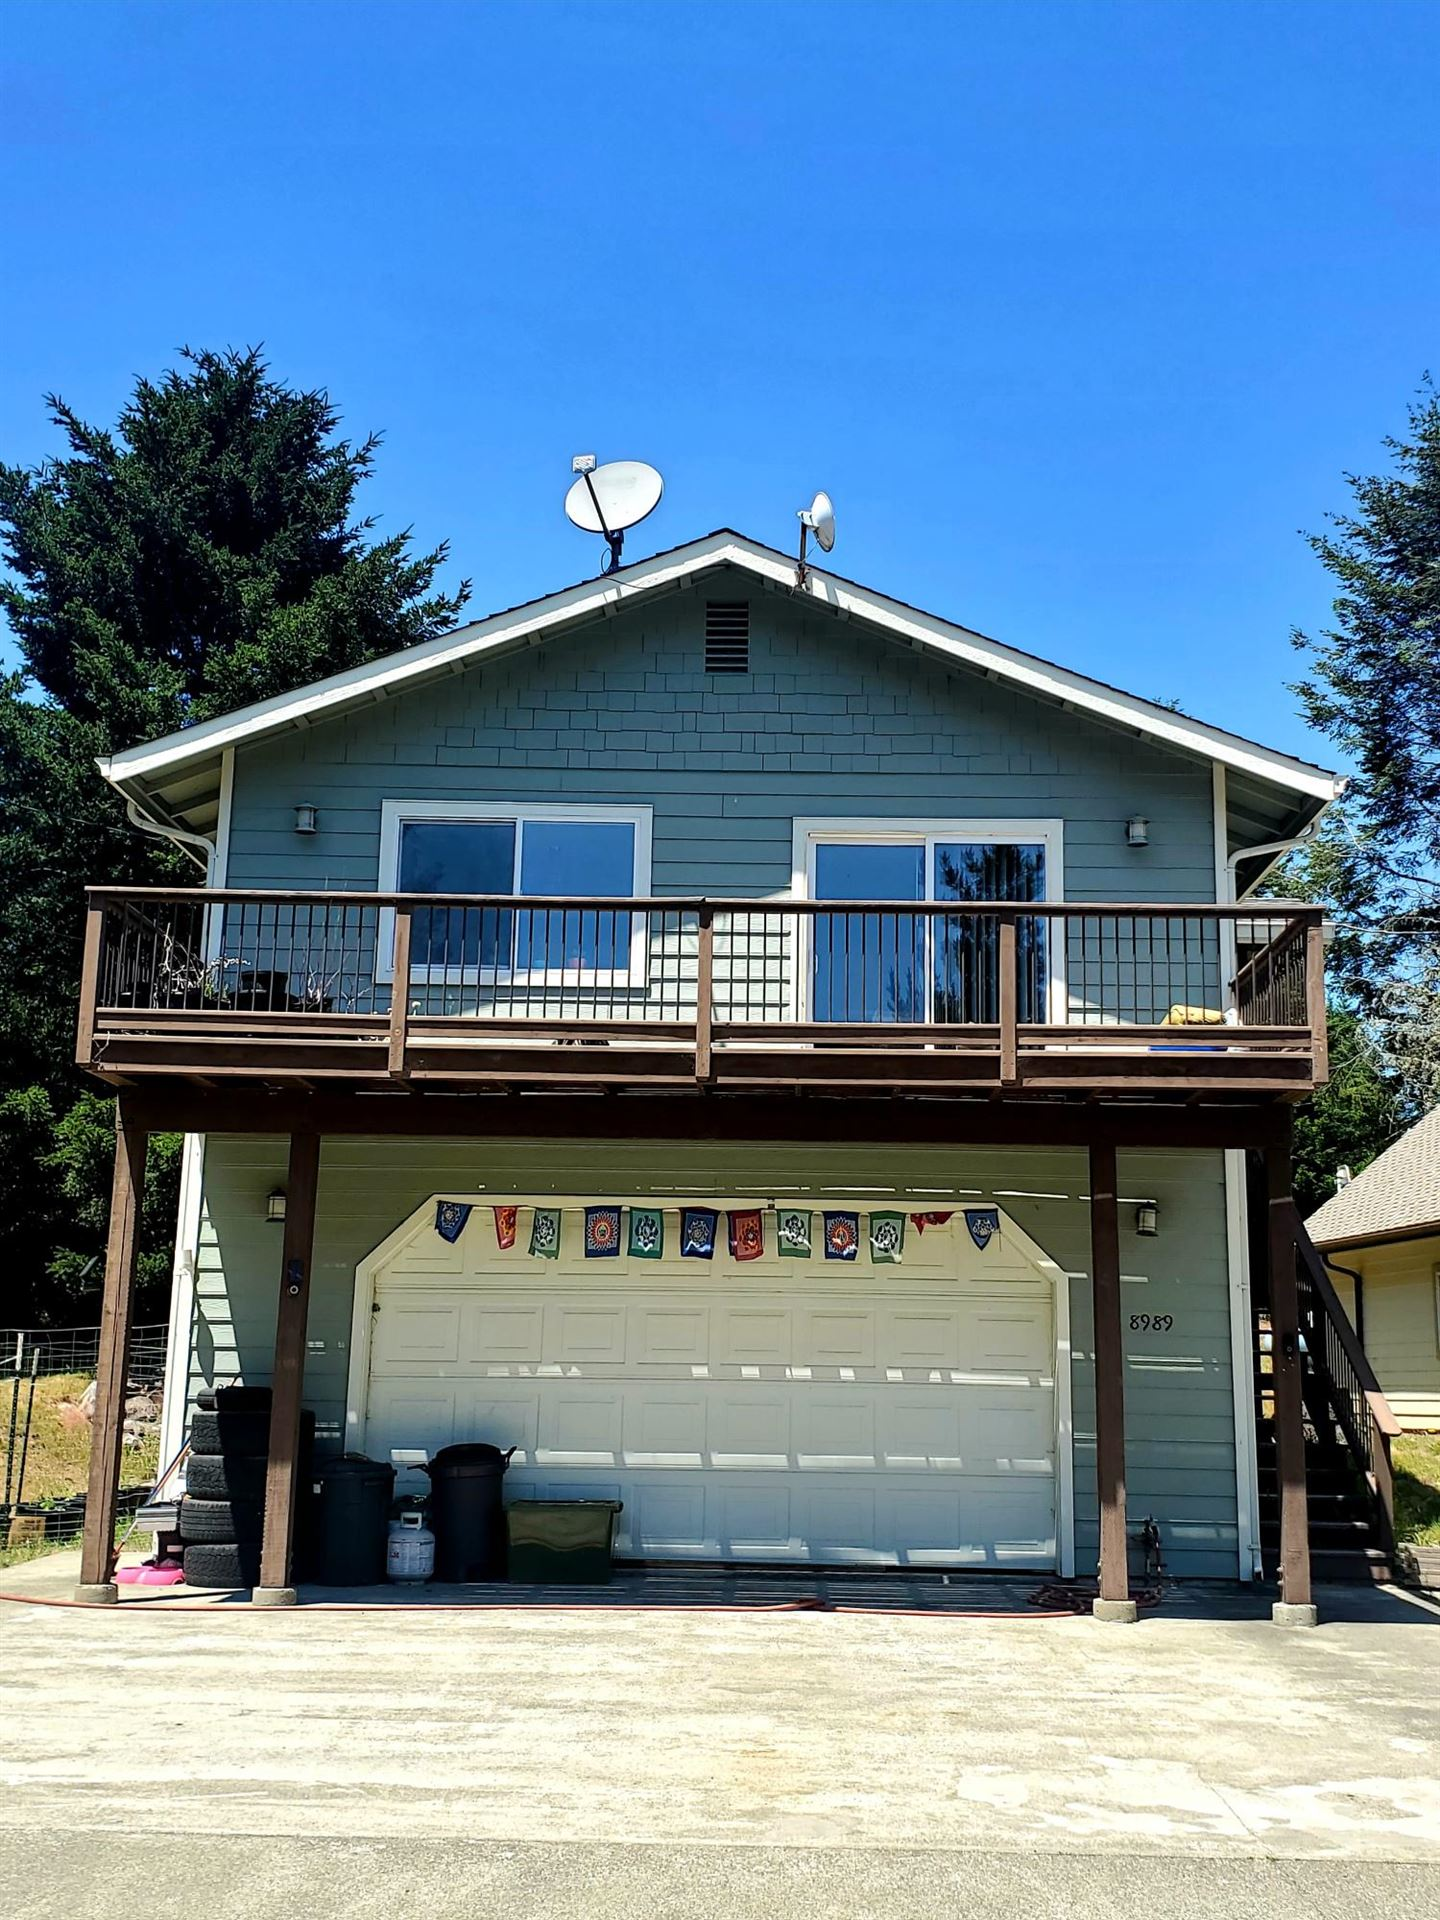 8989 Shelter Cove Road, Shelter Cove, CA 95589 - MLS#: 259163